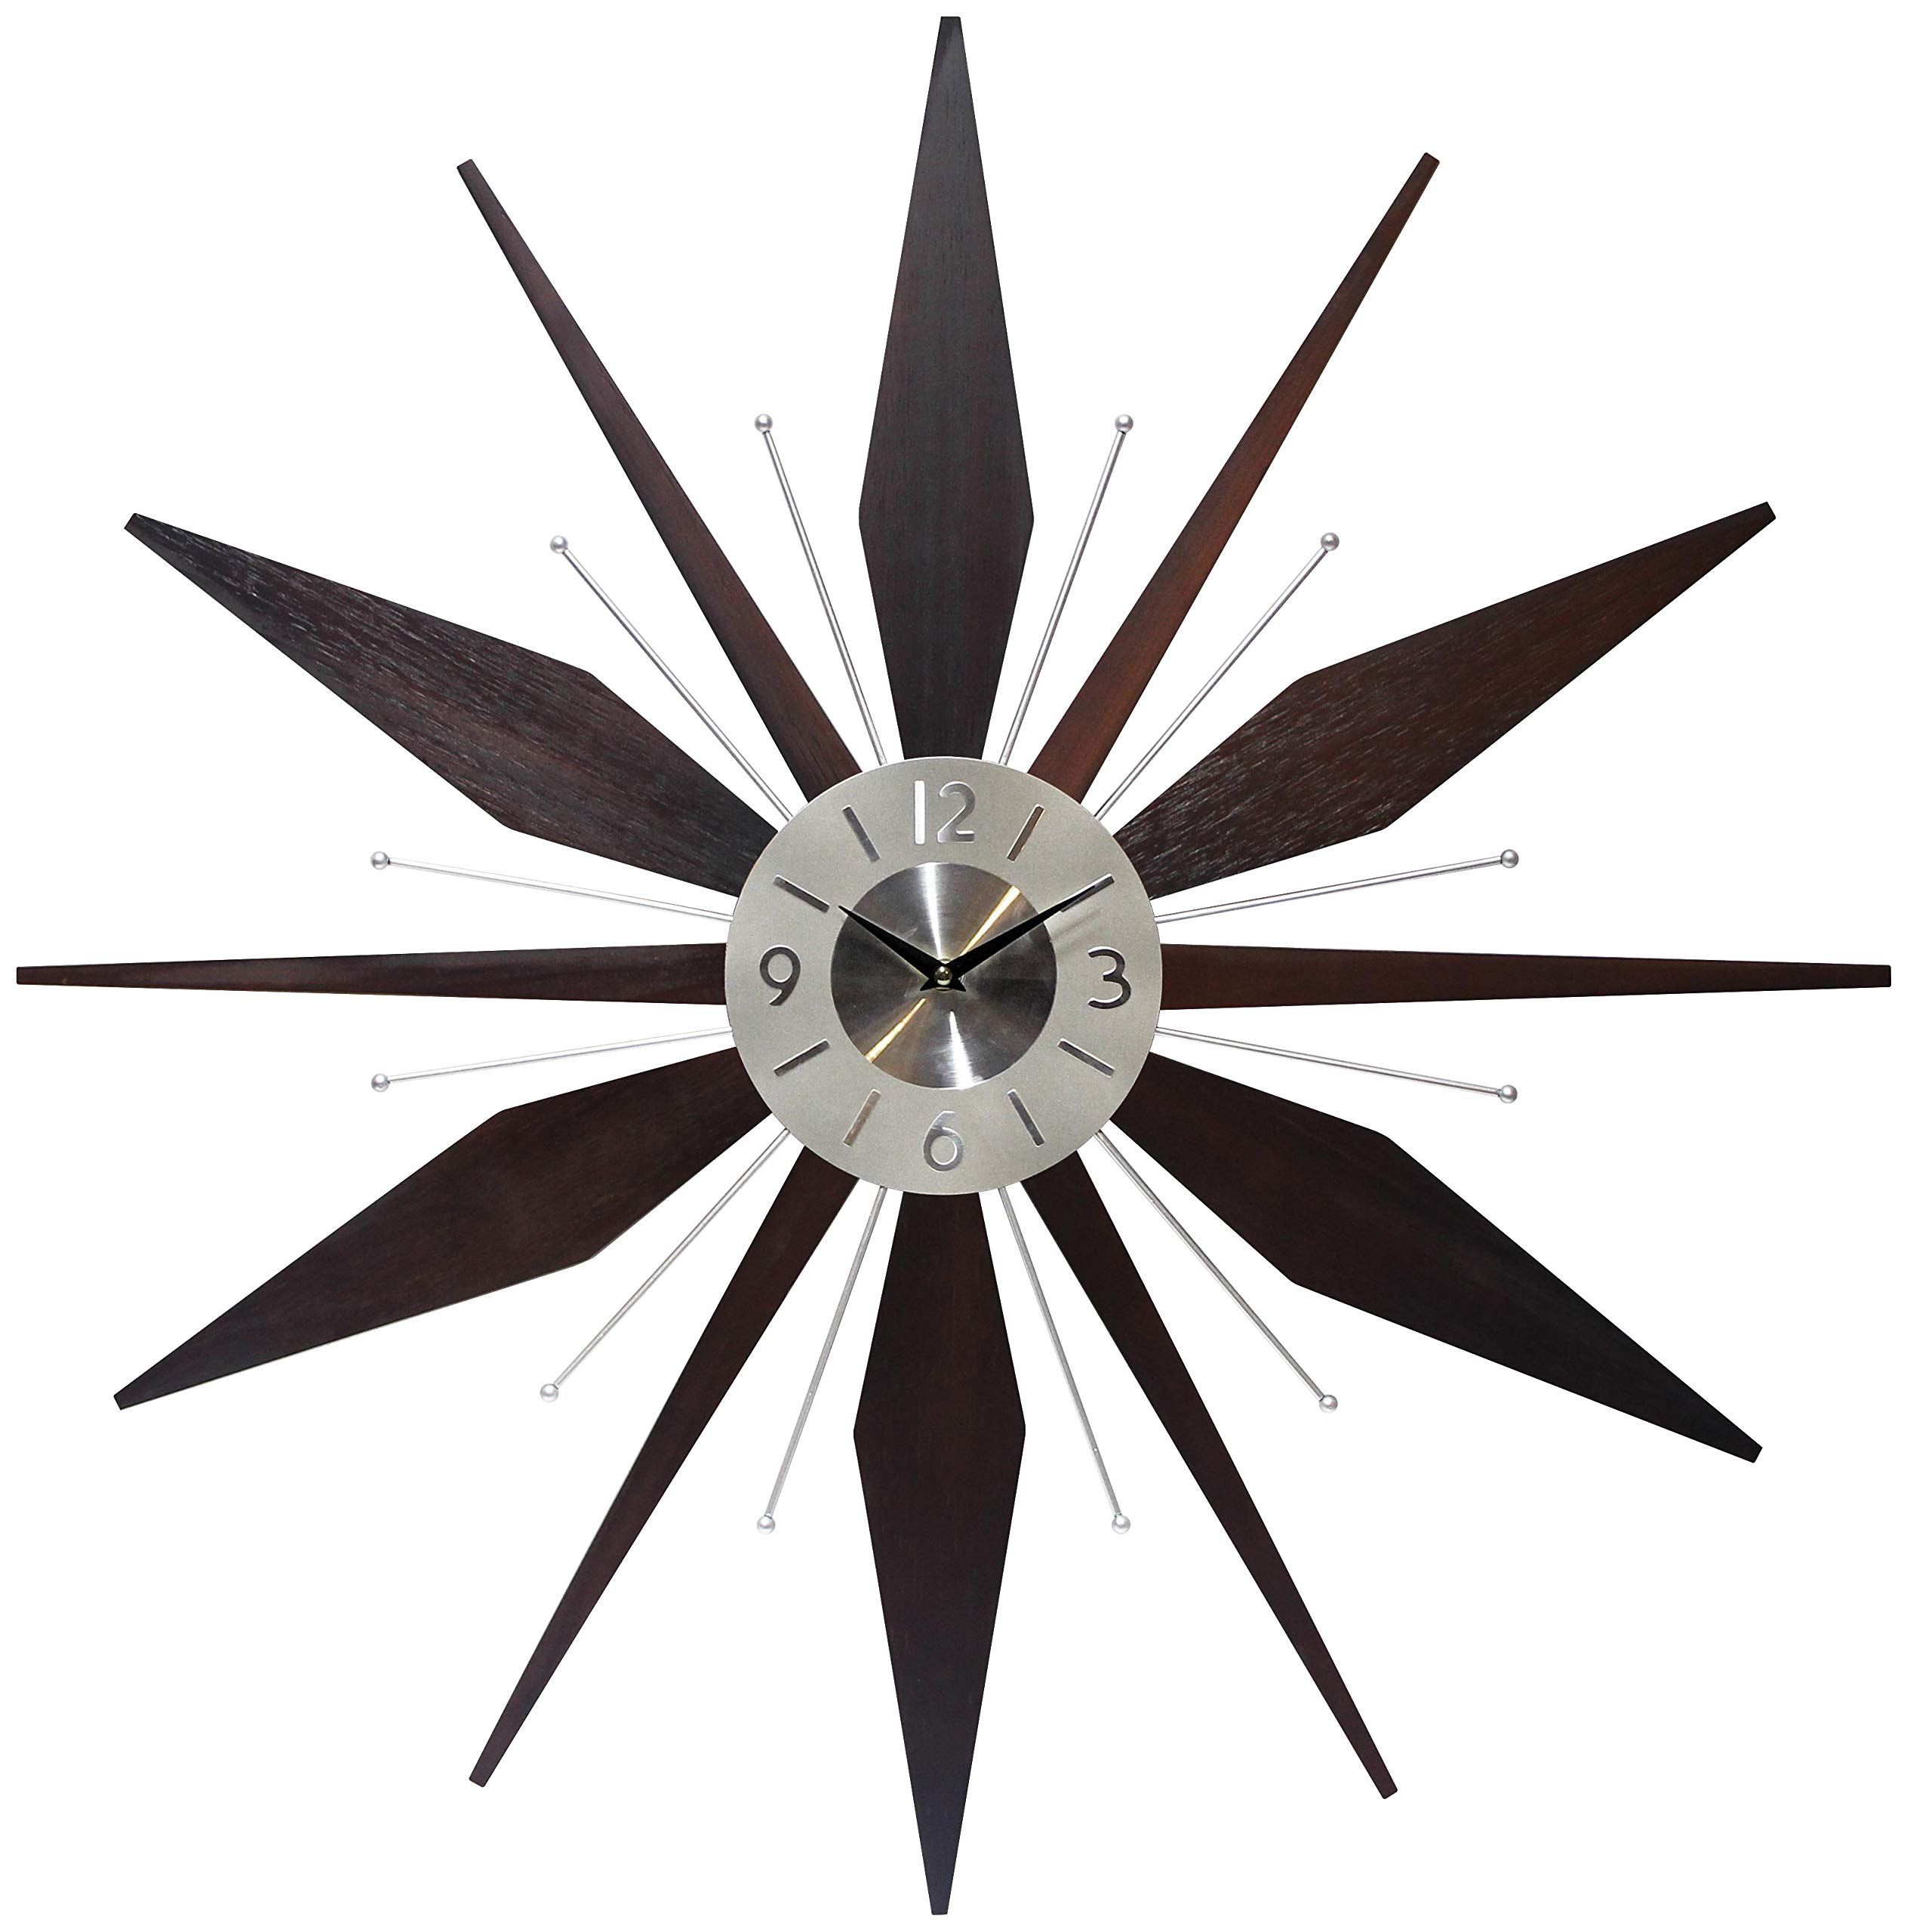 Mid Century Mantle Clock Starburst Wall Clock Large 30 Inch Midcentury Modern Wall Clock Unique Modern Design Sunburst Clock Mid Century Wall Decor For Living Room Kitchen Bedroom Walnut Wall Clock